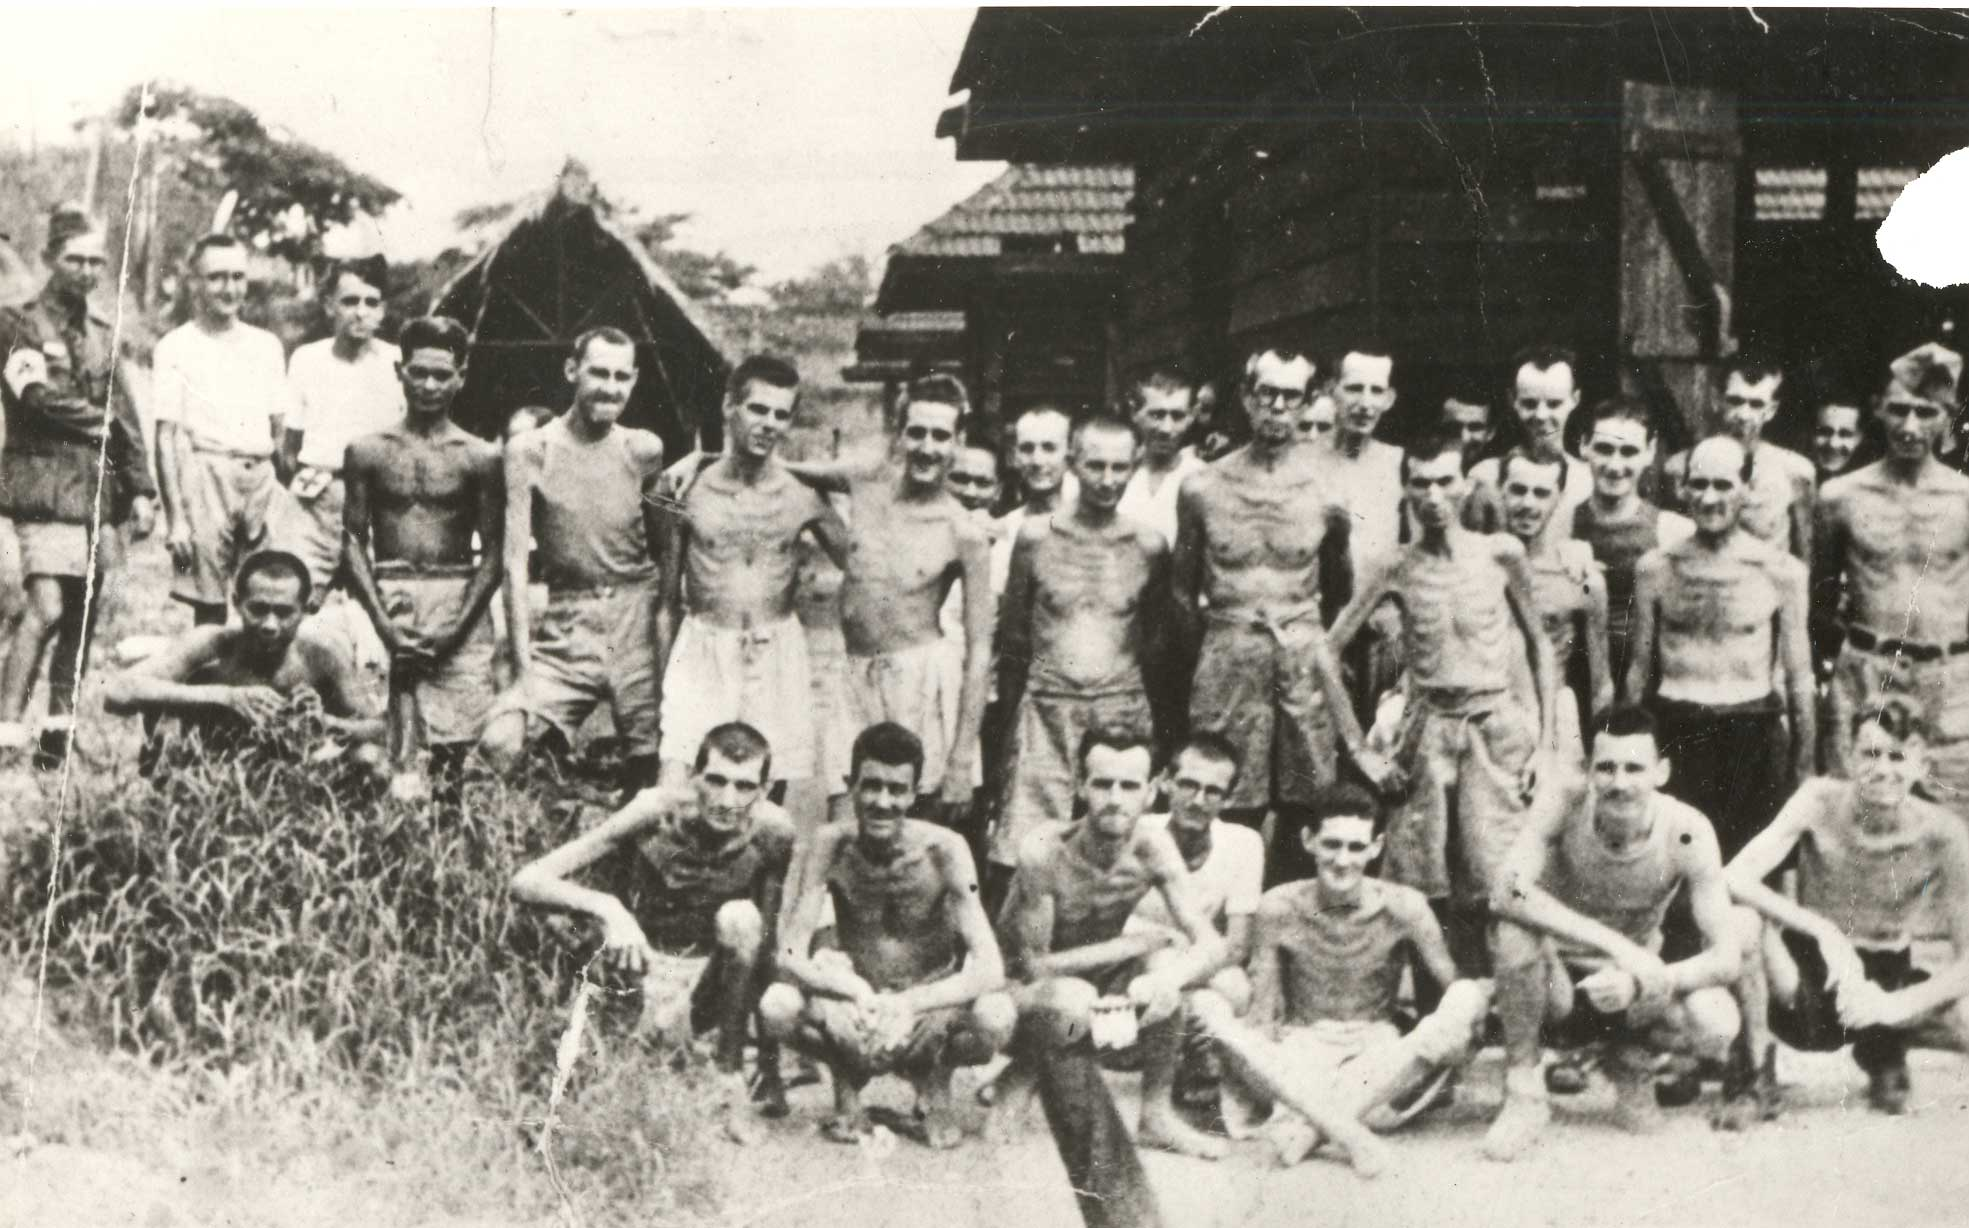 Canadian prisoners of war in a Japanese POW camp.